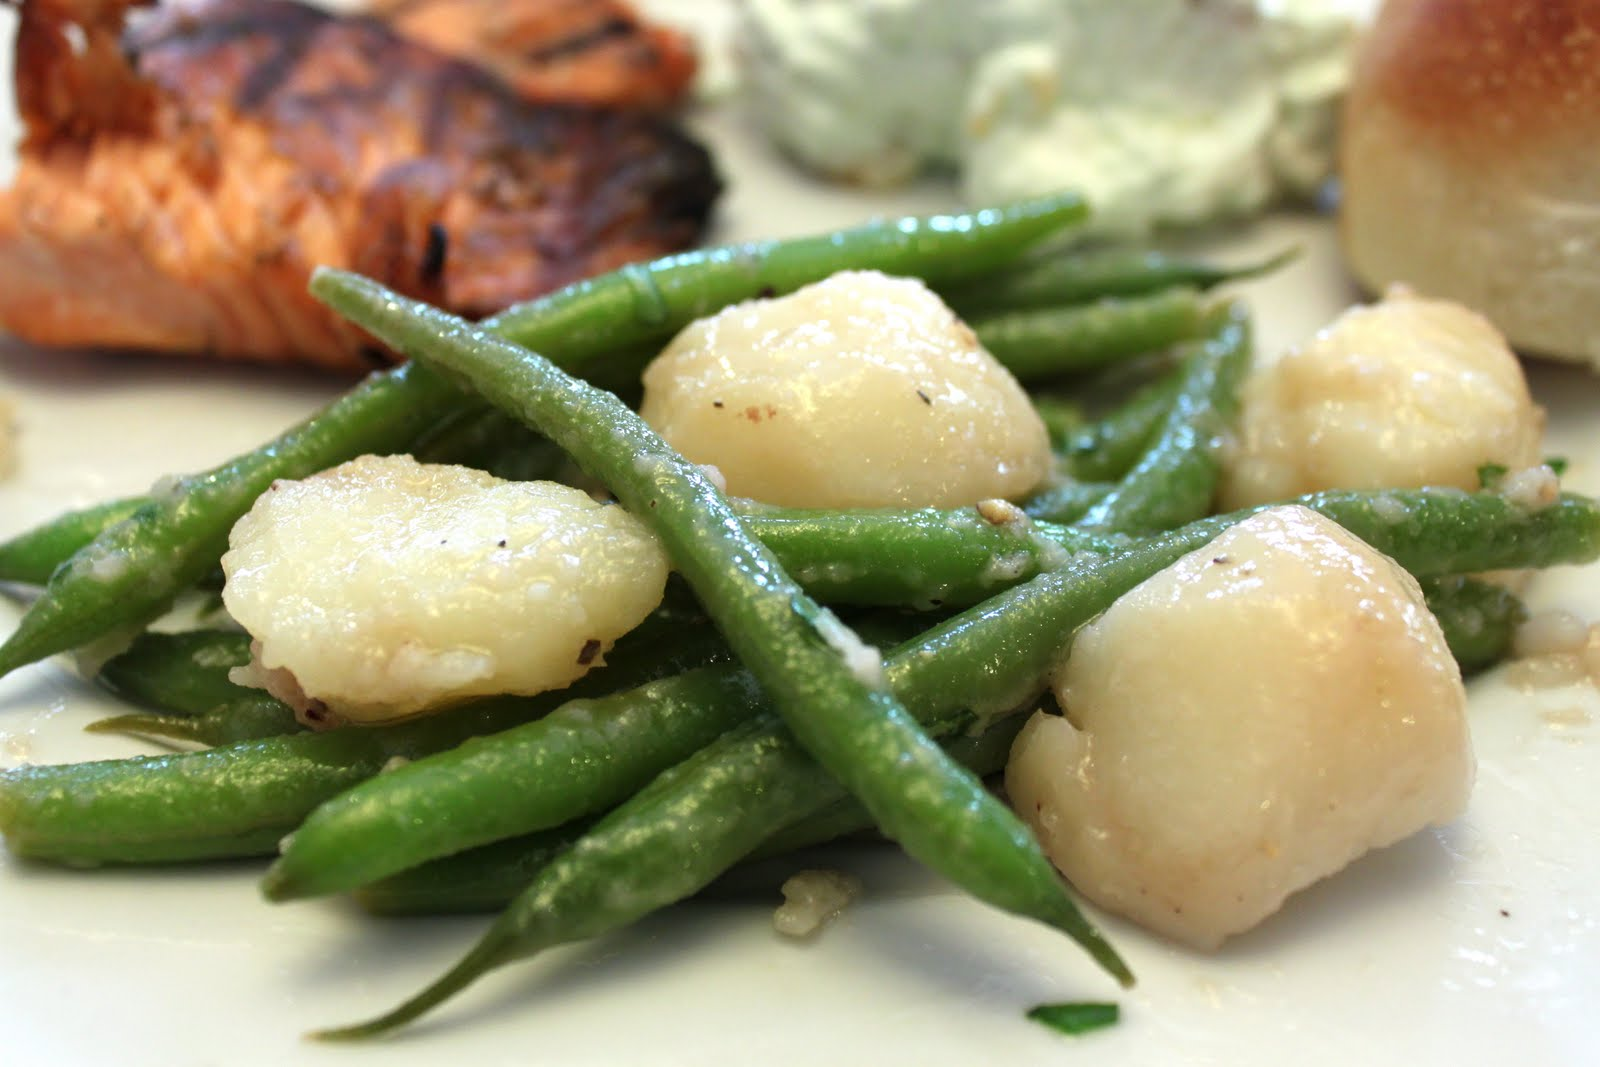 potatoes and green beans vinaigrette 1 pound green beans 2 pounds new ...